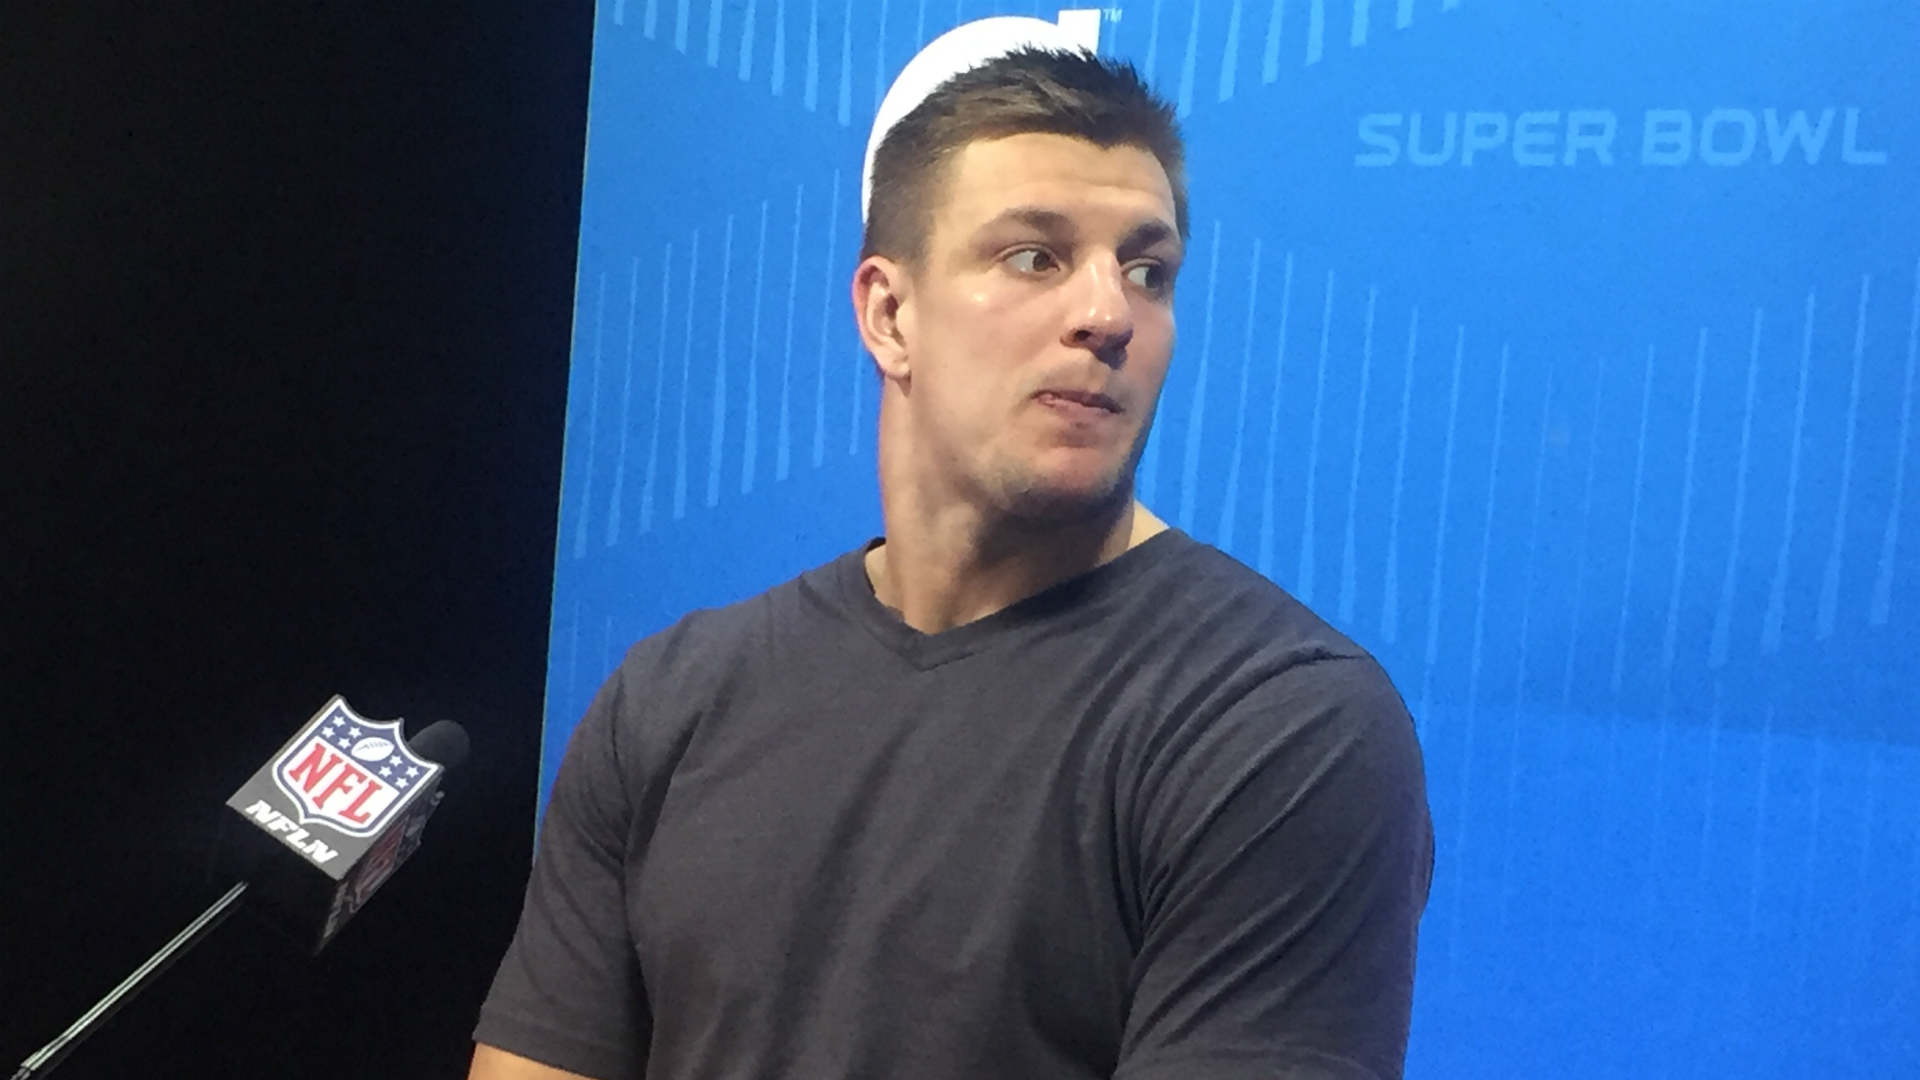 Rob Gronkowski returns home from Super Bowl to find house burglarized